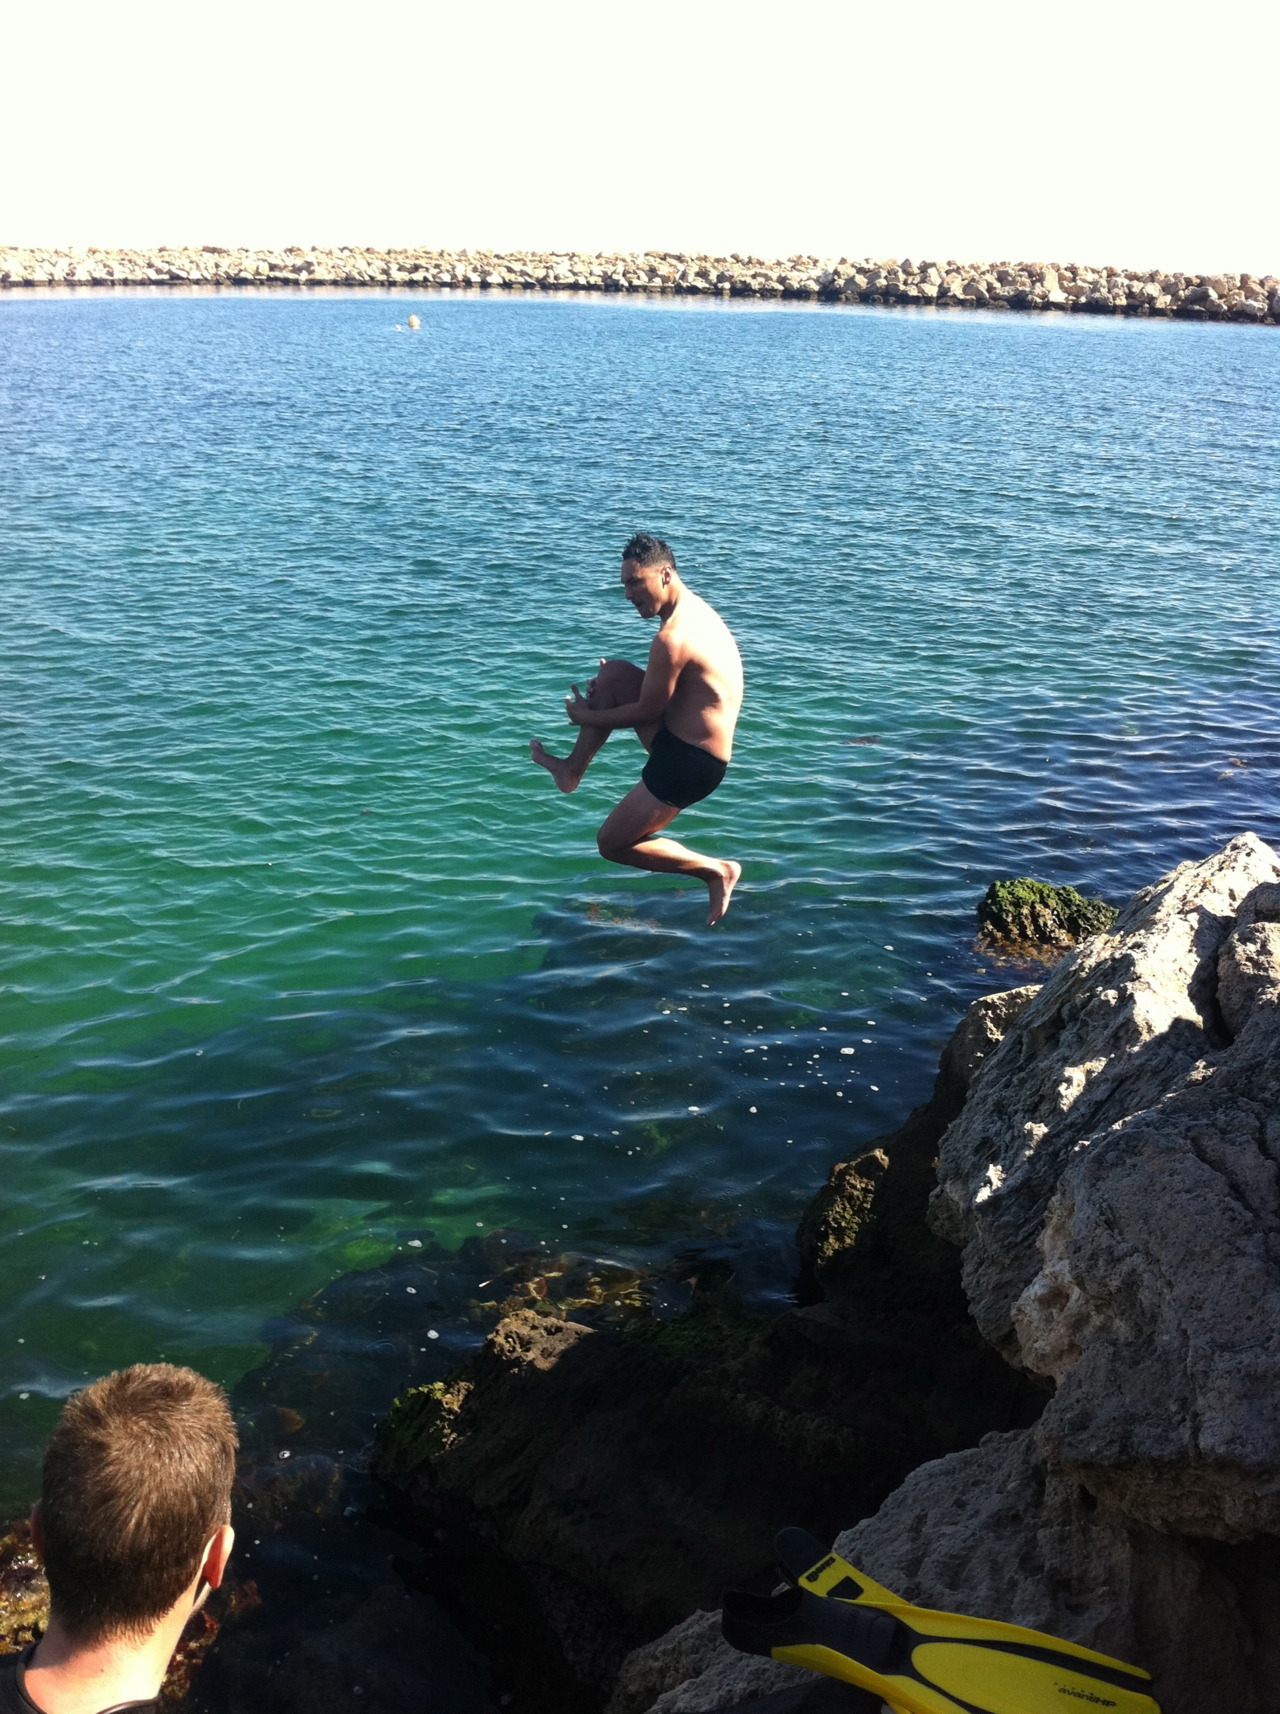 A day at the river in Fremantle